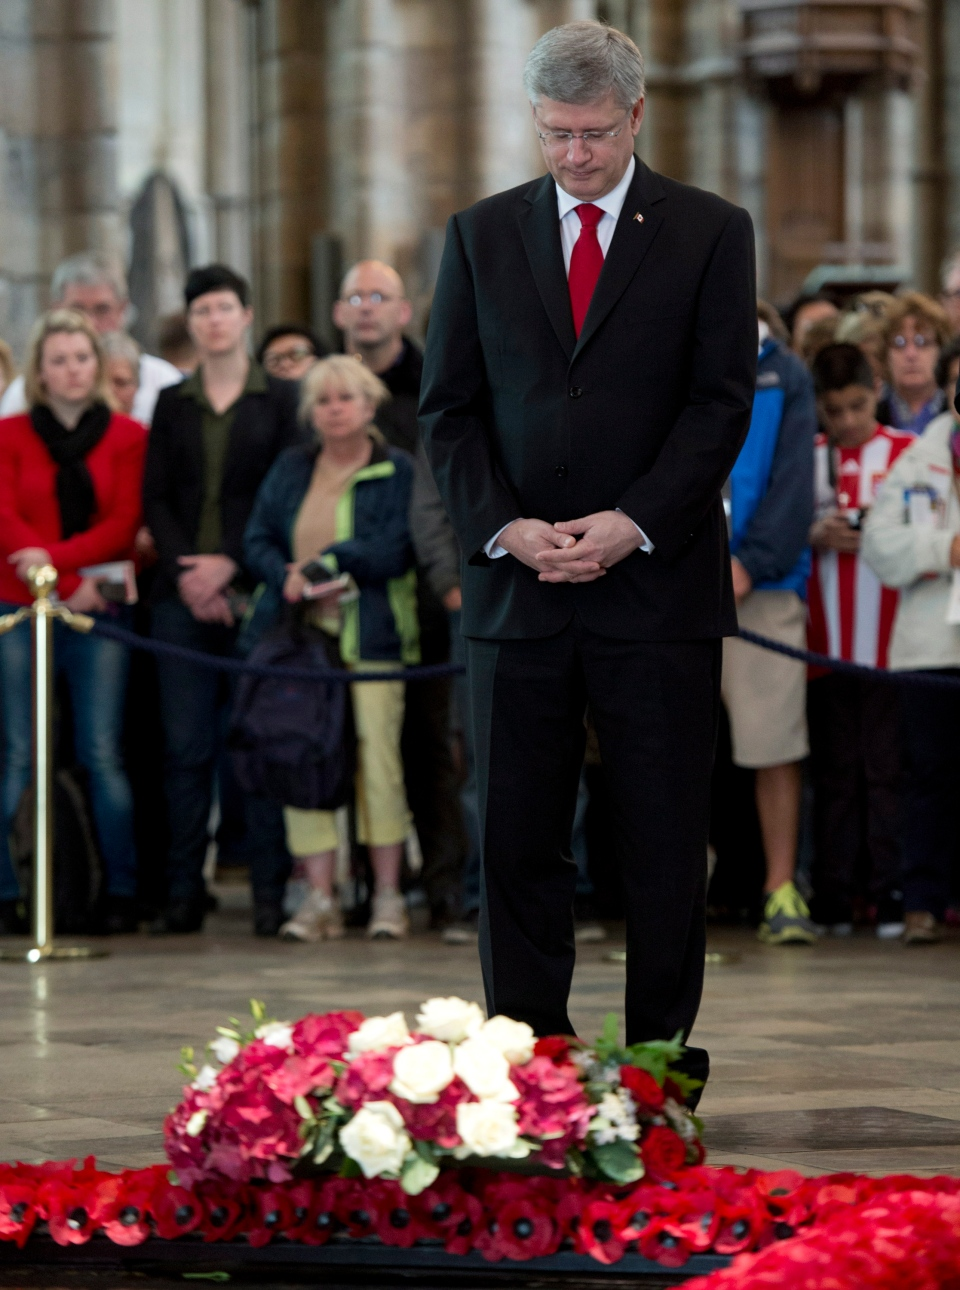 Prime Minister Stephen Harper pays his respects at the Tomb of the Unknown Warrior in Westminster Abbey in London, England, Wednesday, June 12, 2013. (Adrian Wyld / THE CANADIAN PRESS)